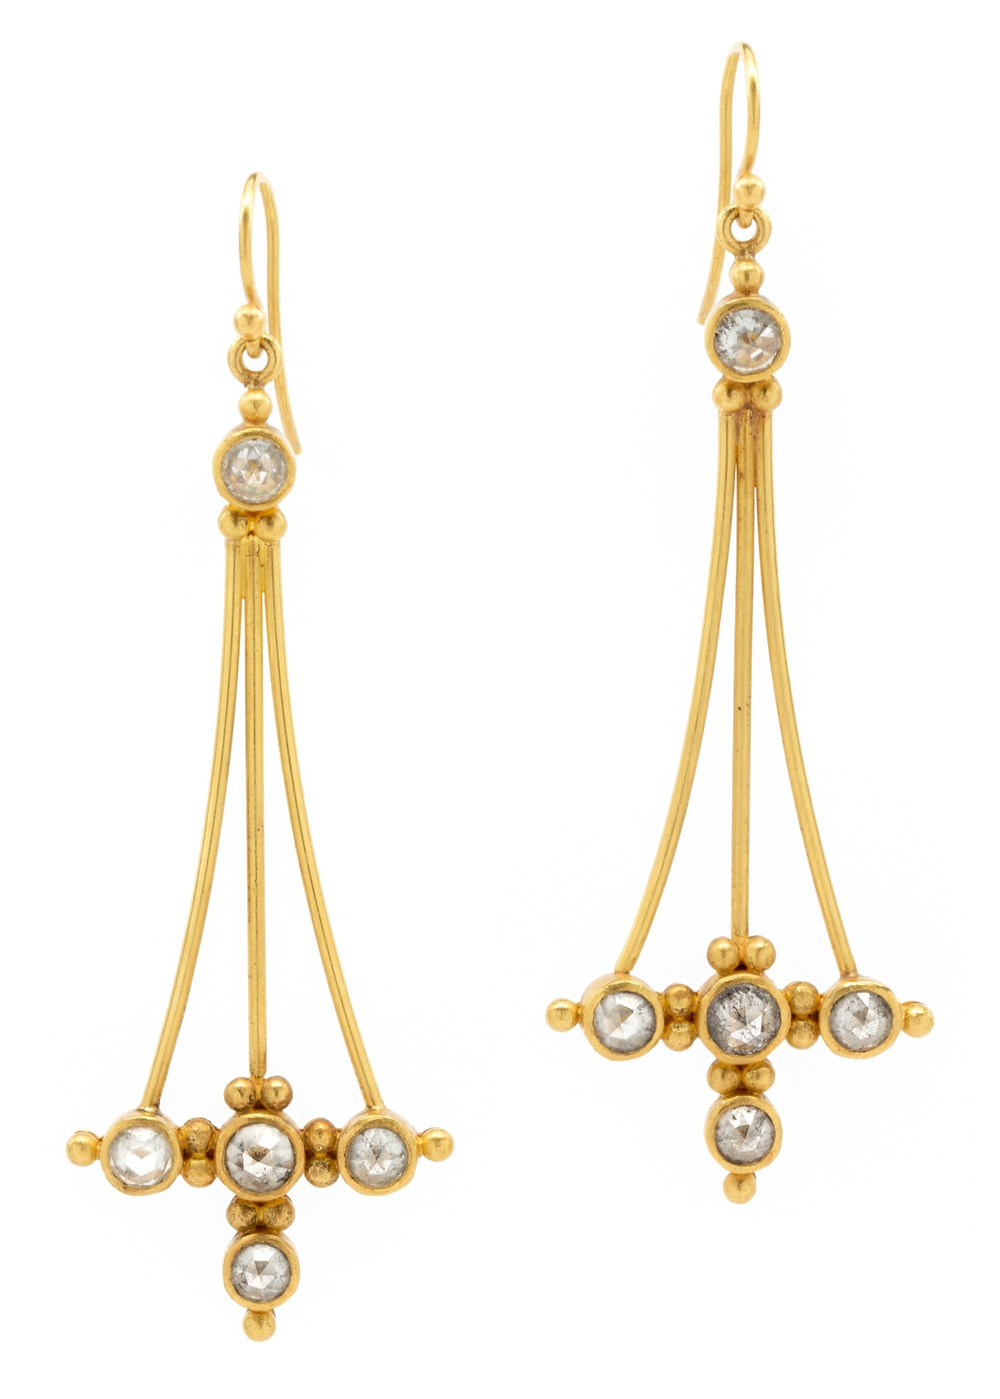 Linda Hoj Eryie Gate rose cut diamond earrings in forged 22k yellow gold